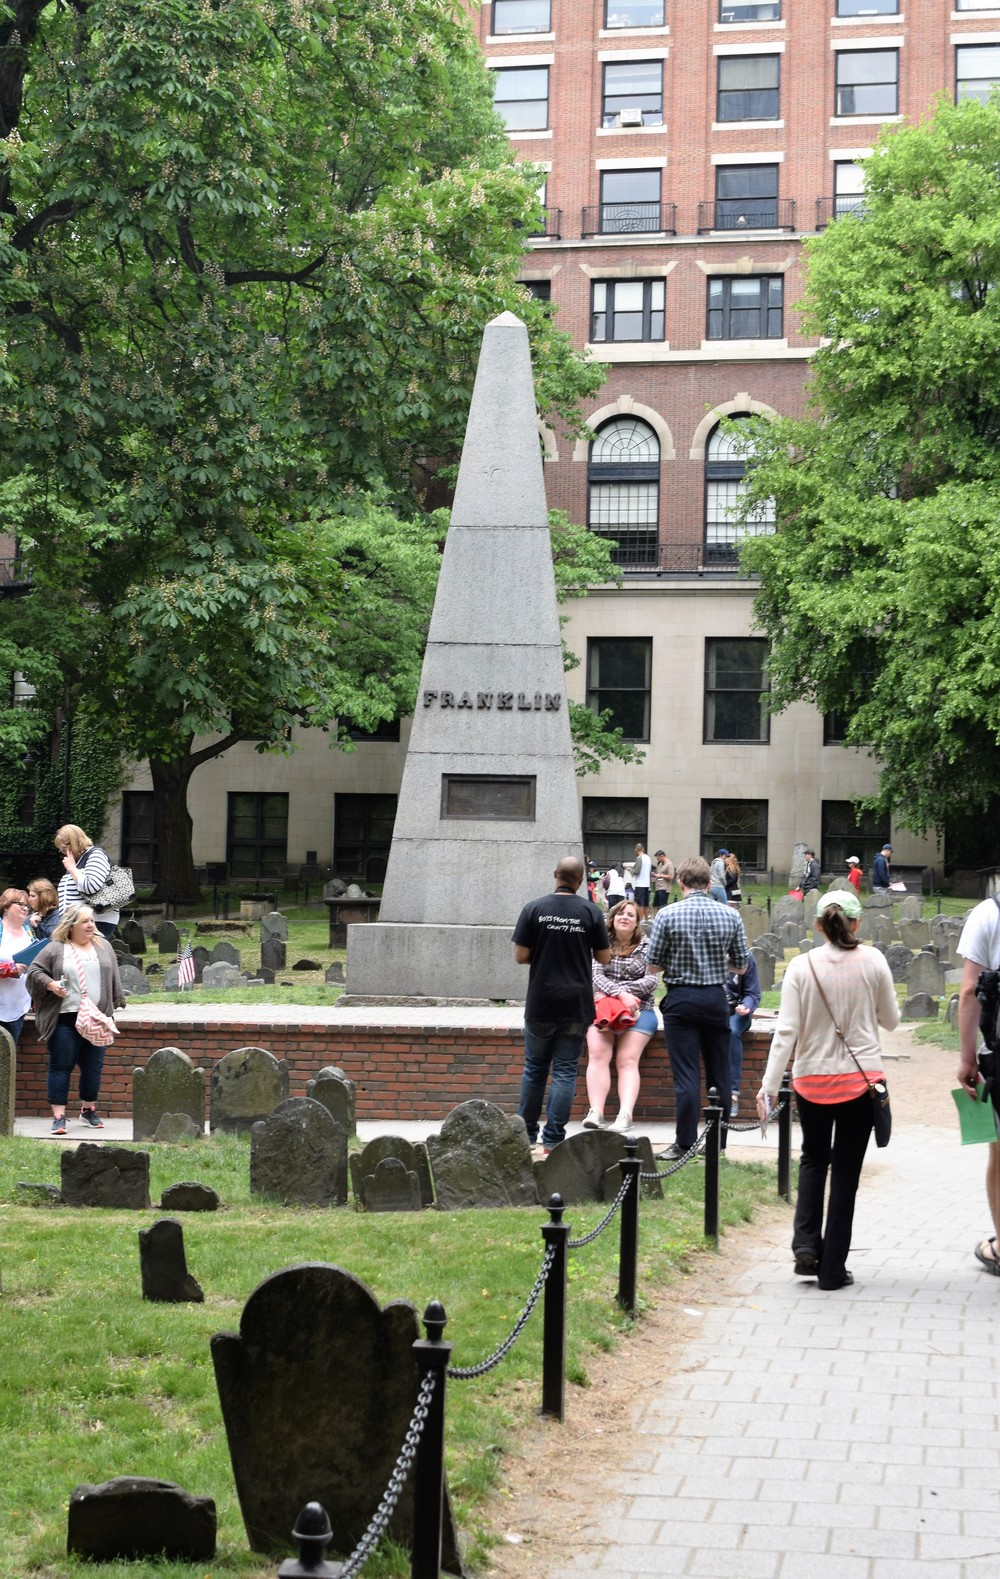 Where Ben Franklin's parrots are buried, yes parrots